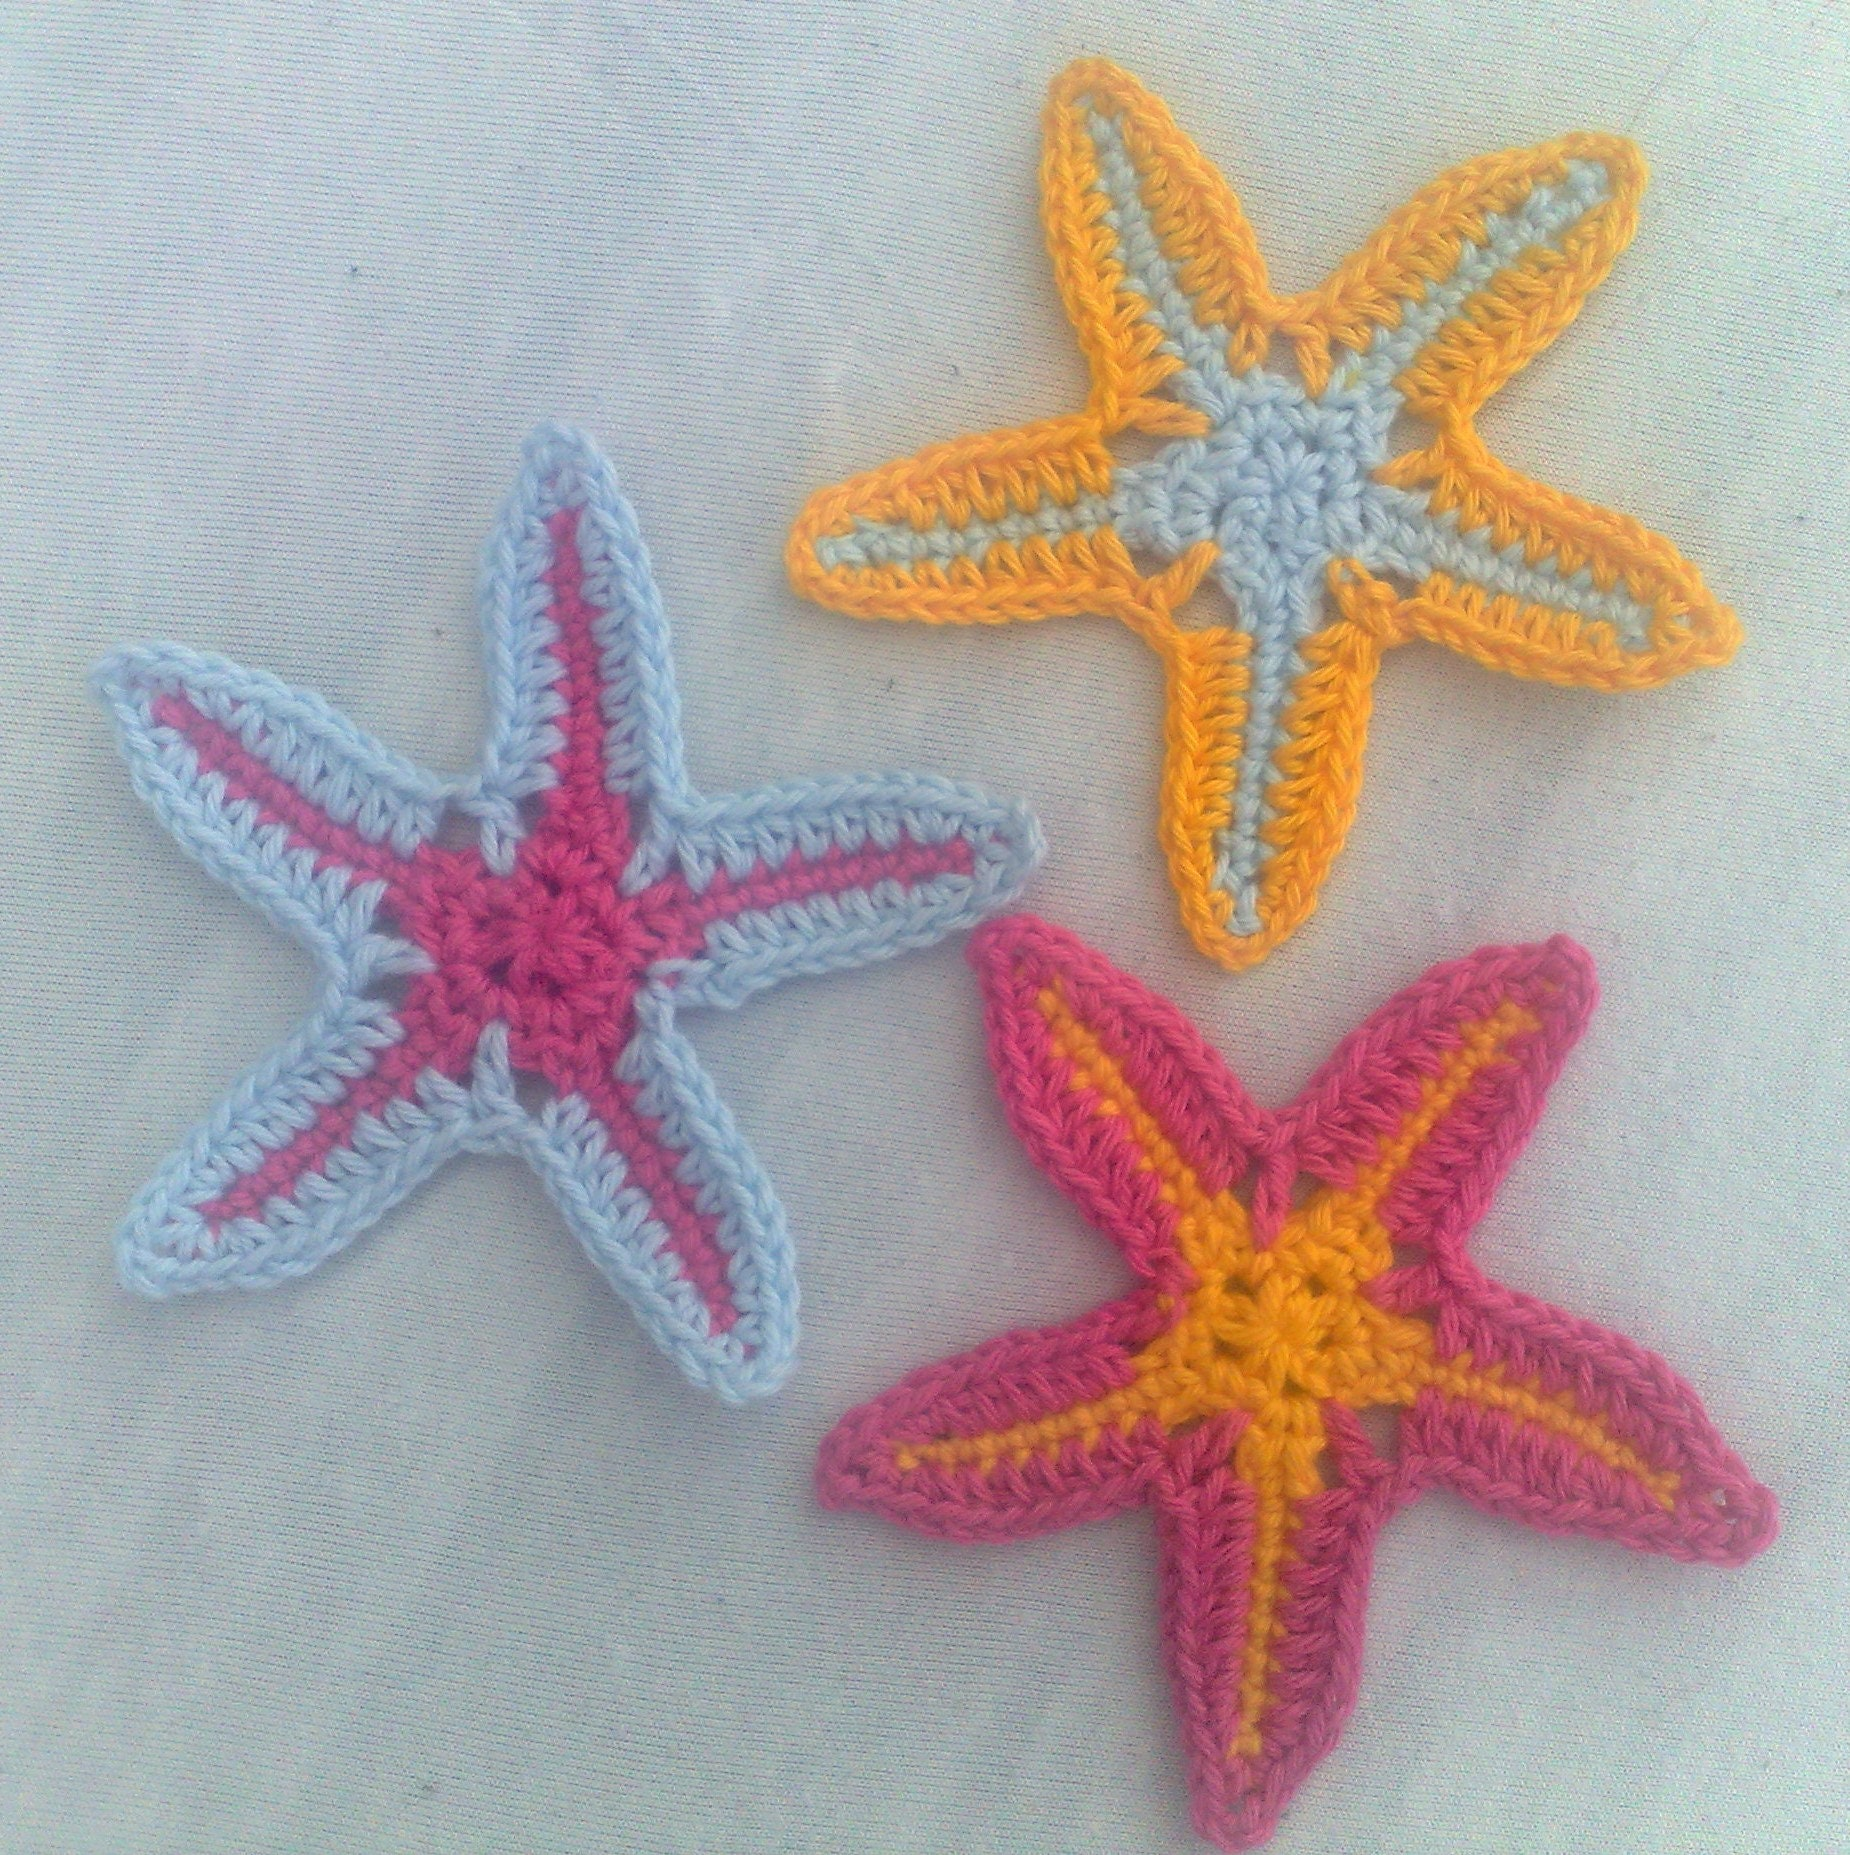 3 Starfish Crocheted Patches And Sewing Accessories For The Summer